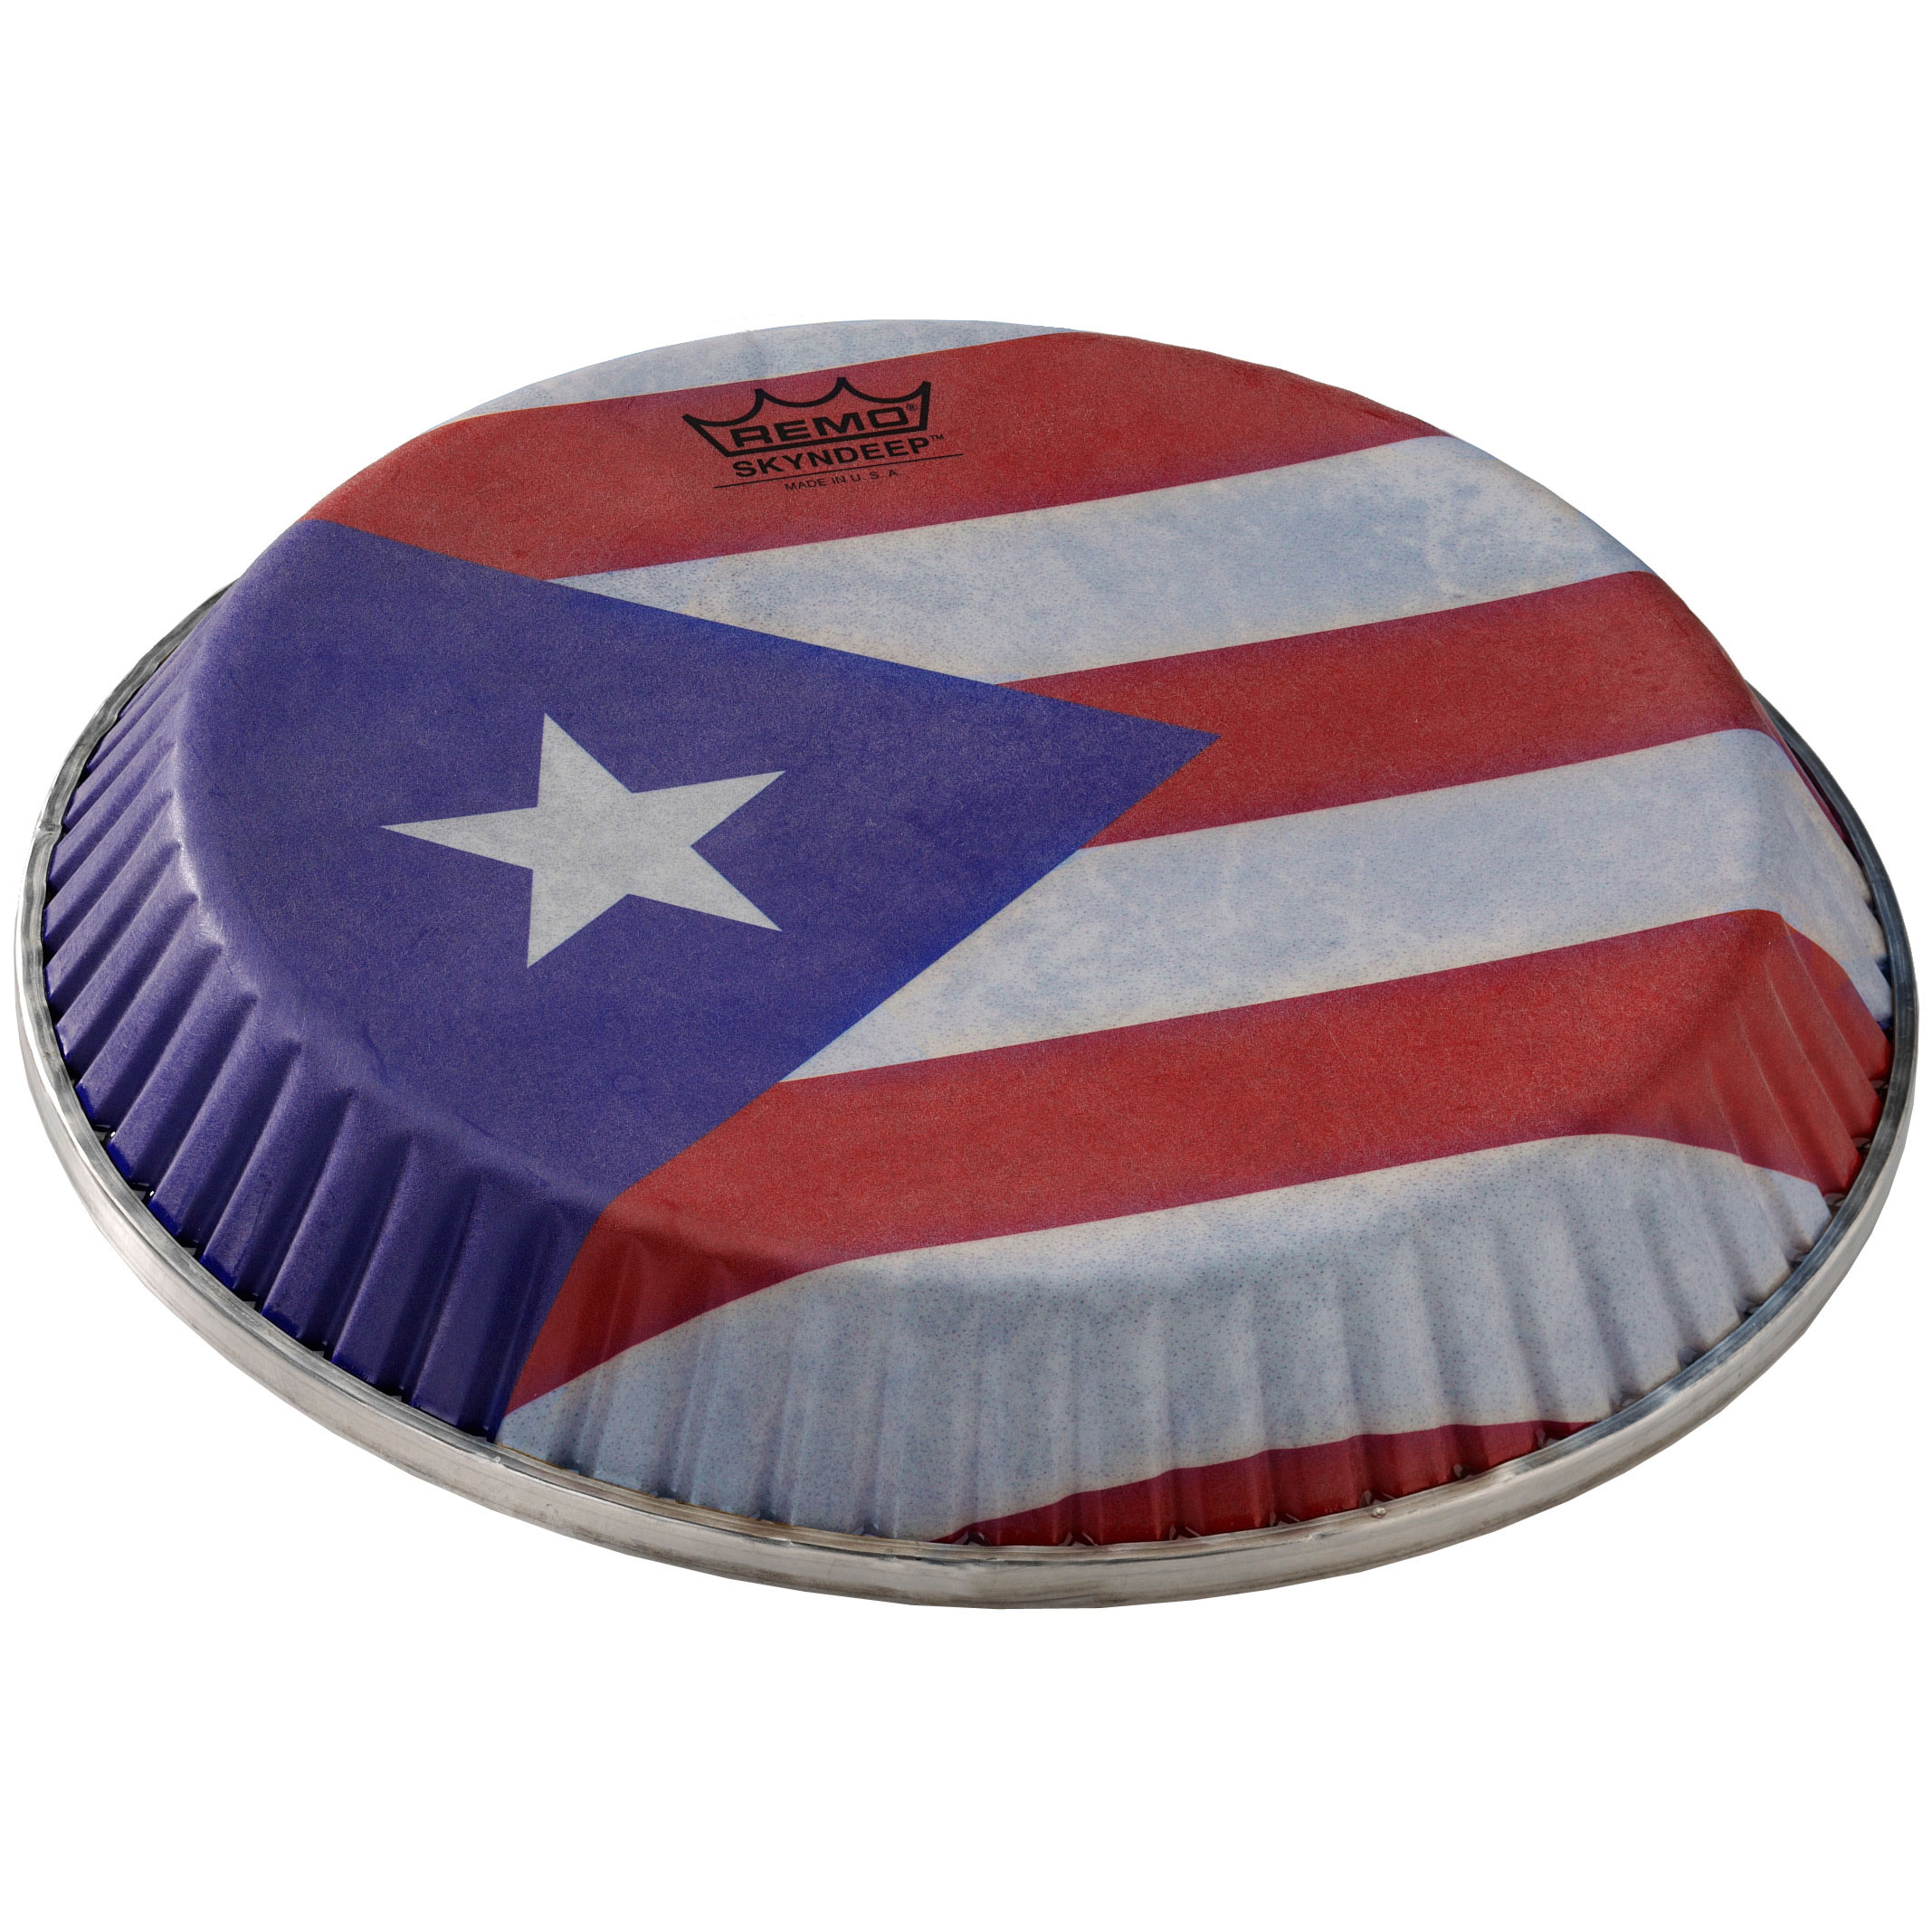 "Remo 11.06"" Symmetry Skyndeep Conga Drum Head (D2 Collar) with Puerto Rican Flag Graphic"